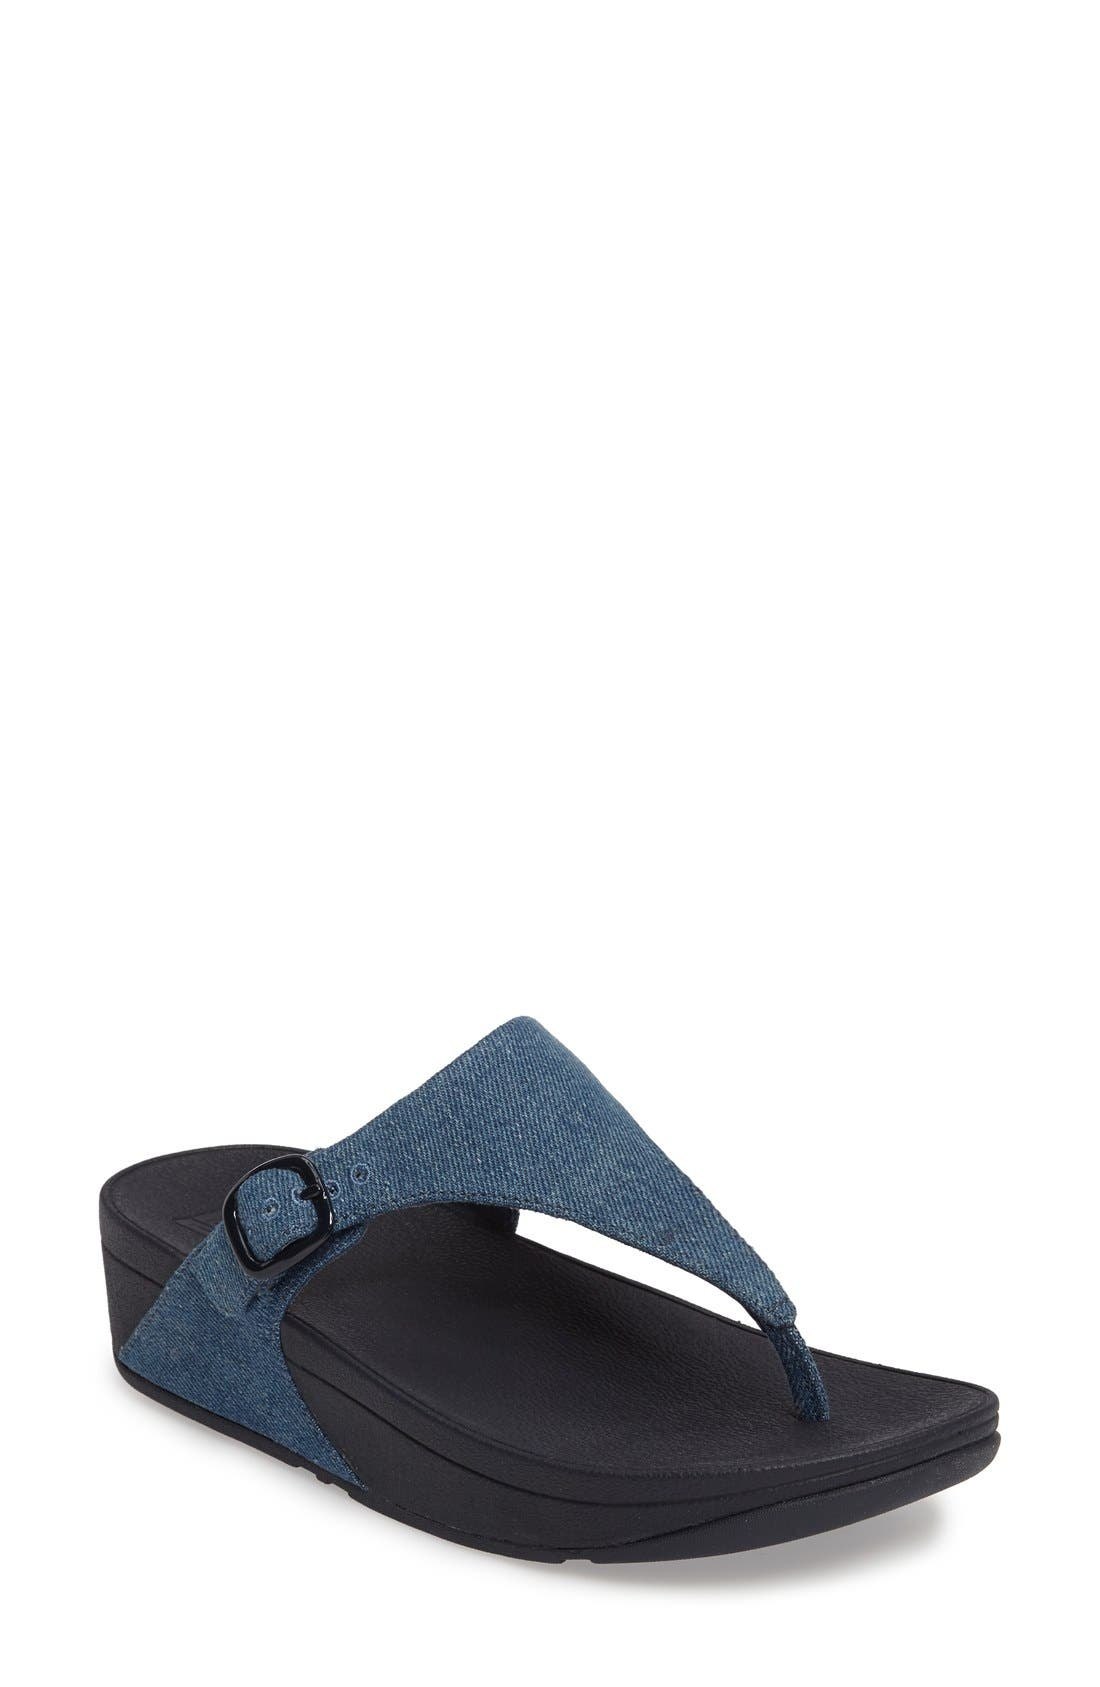 FitFlop™ 'The Skinny' Flip Flop (Women)